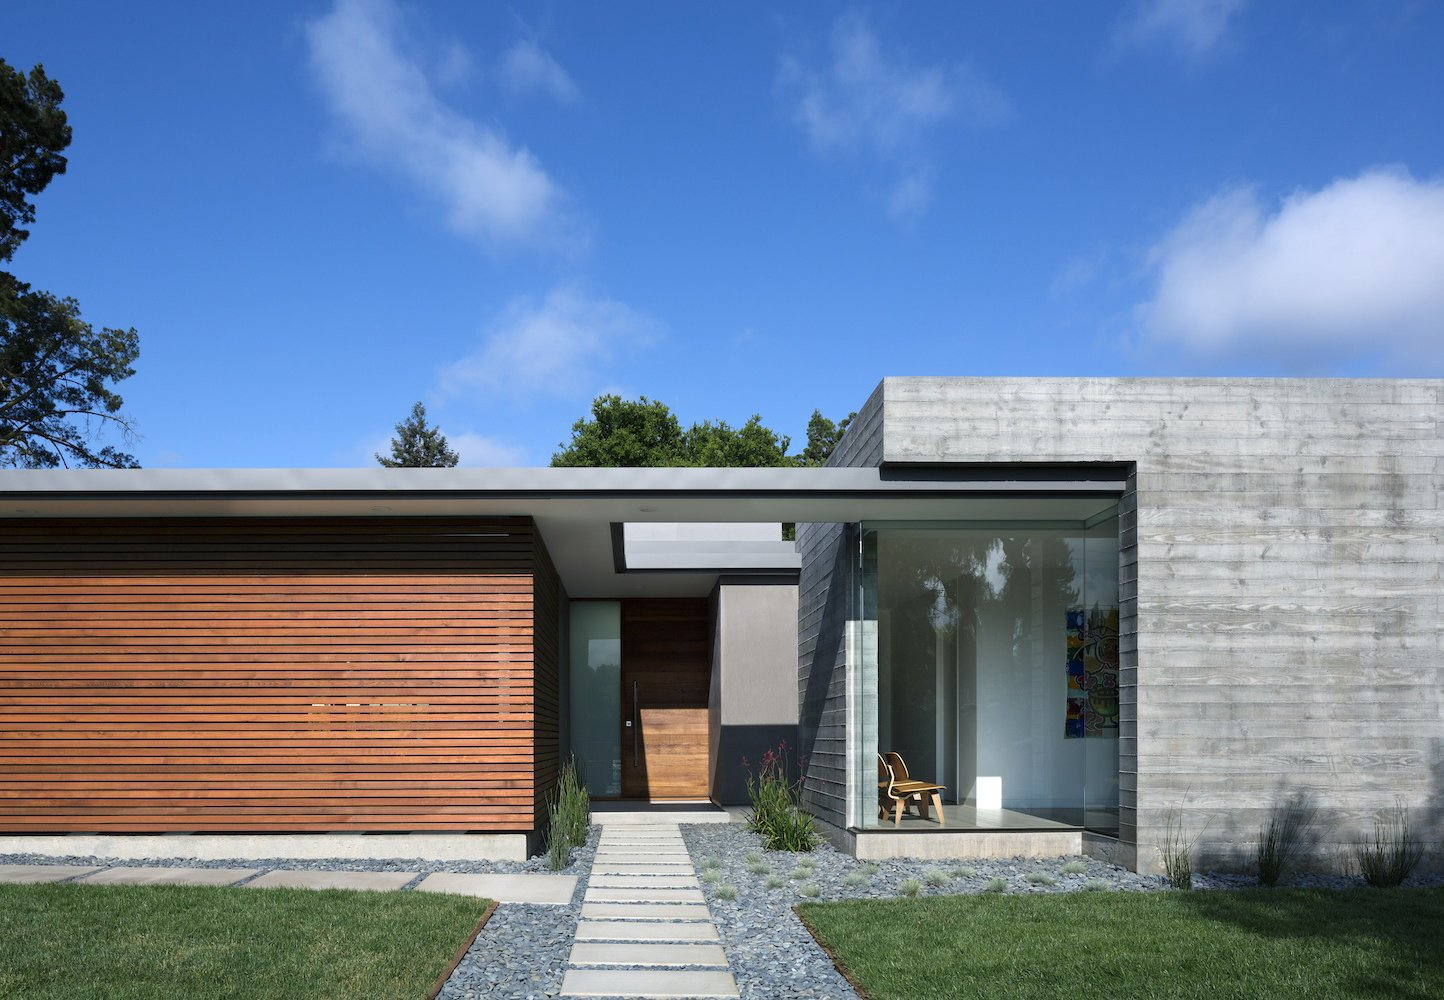 Located in Los Altos, California, Curt Cline's modern house seeks to respect the neighborhood fabric. By keeping the abode low-slung, using a few simple geometries, and the leaving the facade spare, Cline helped the structure blend in with the 1940s and 1950s structures around it. The materials—board-formed concrete and cedar slats—instill a contemporary California aesthetic.  Photo 1 of 1 in Discuss: Steel, Glass, Concrete, Wood—Do You Have a Preference? from A Modern Energy-Efficient House in Los Altos